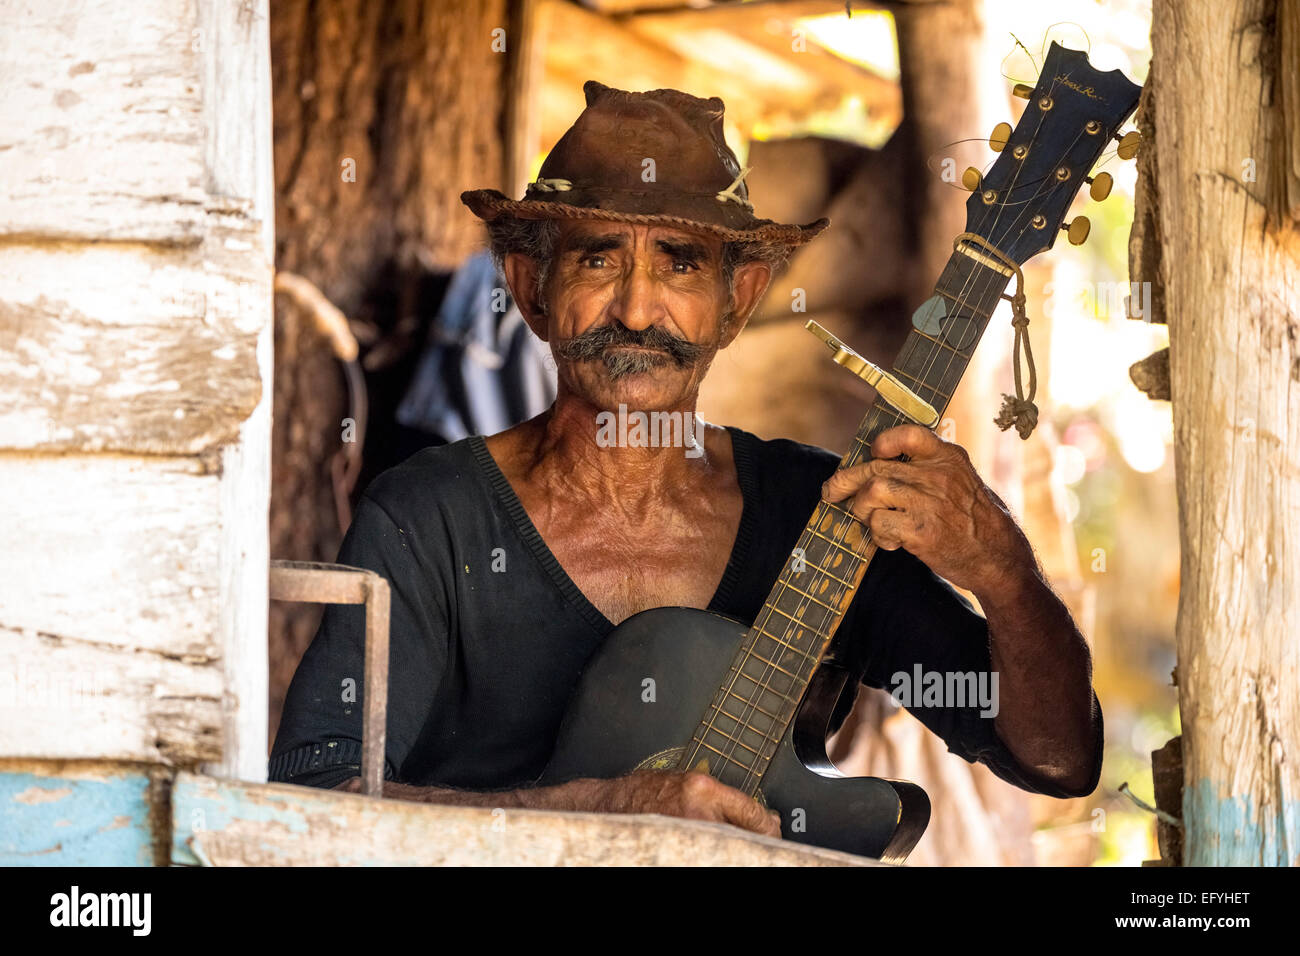 Sugar cane farmer playing the guitar, Valle de los Ingenios, Trinidad, Sancti Spiritus Province, Cuba - Stock Image